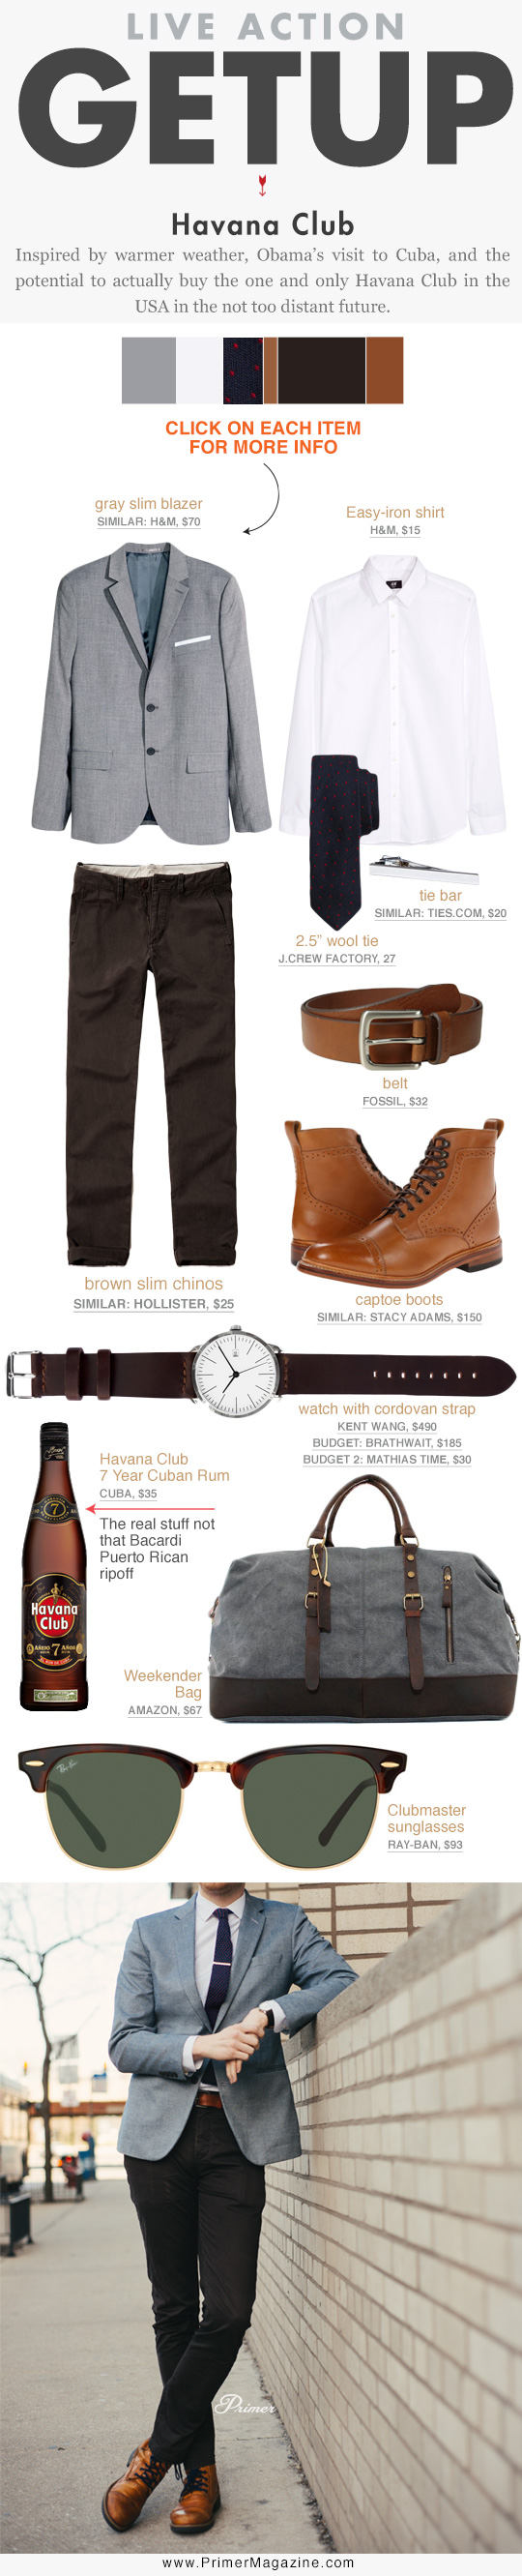 Getup Havana Club - Gray blazer, white shirt and tie, brown pants, and tan boots